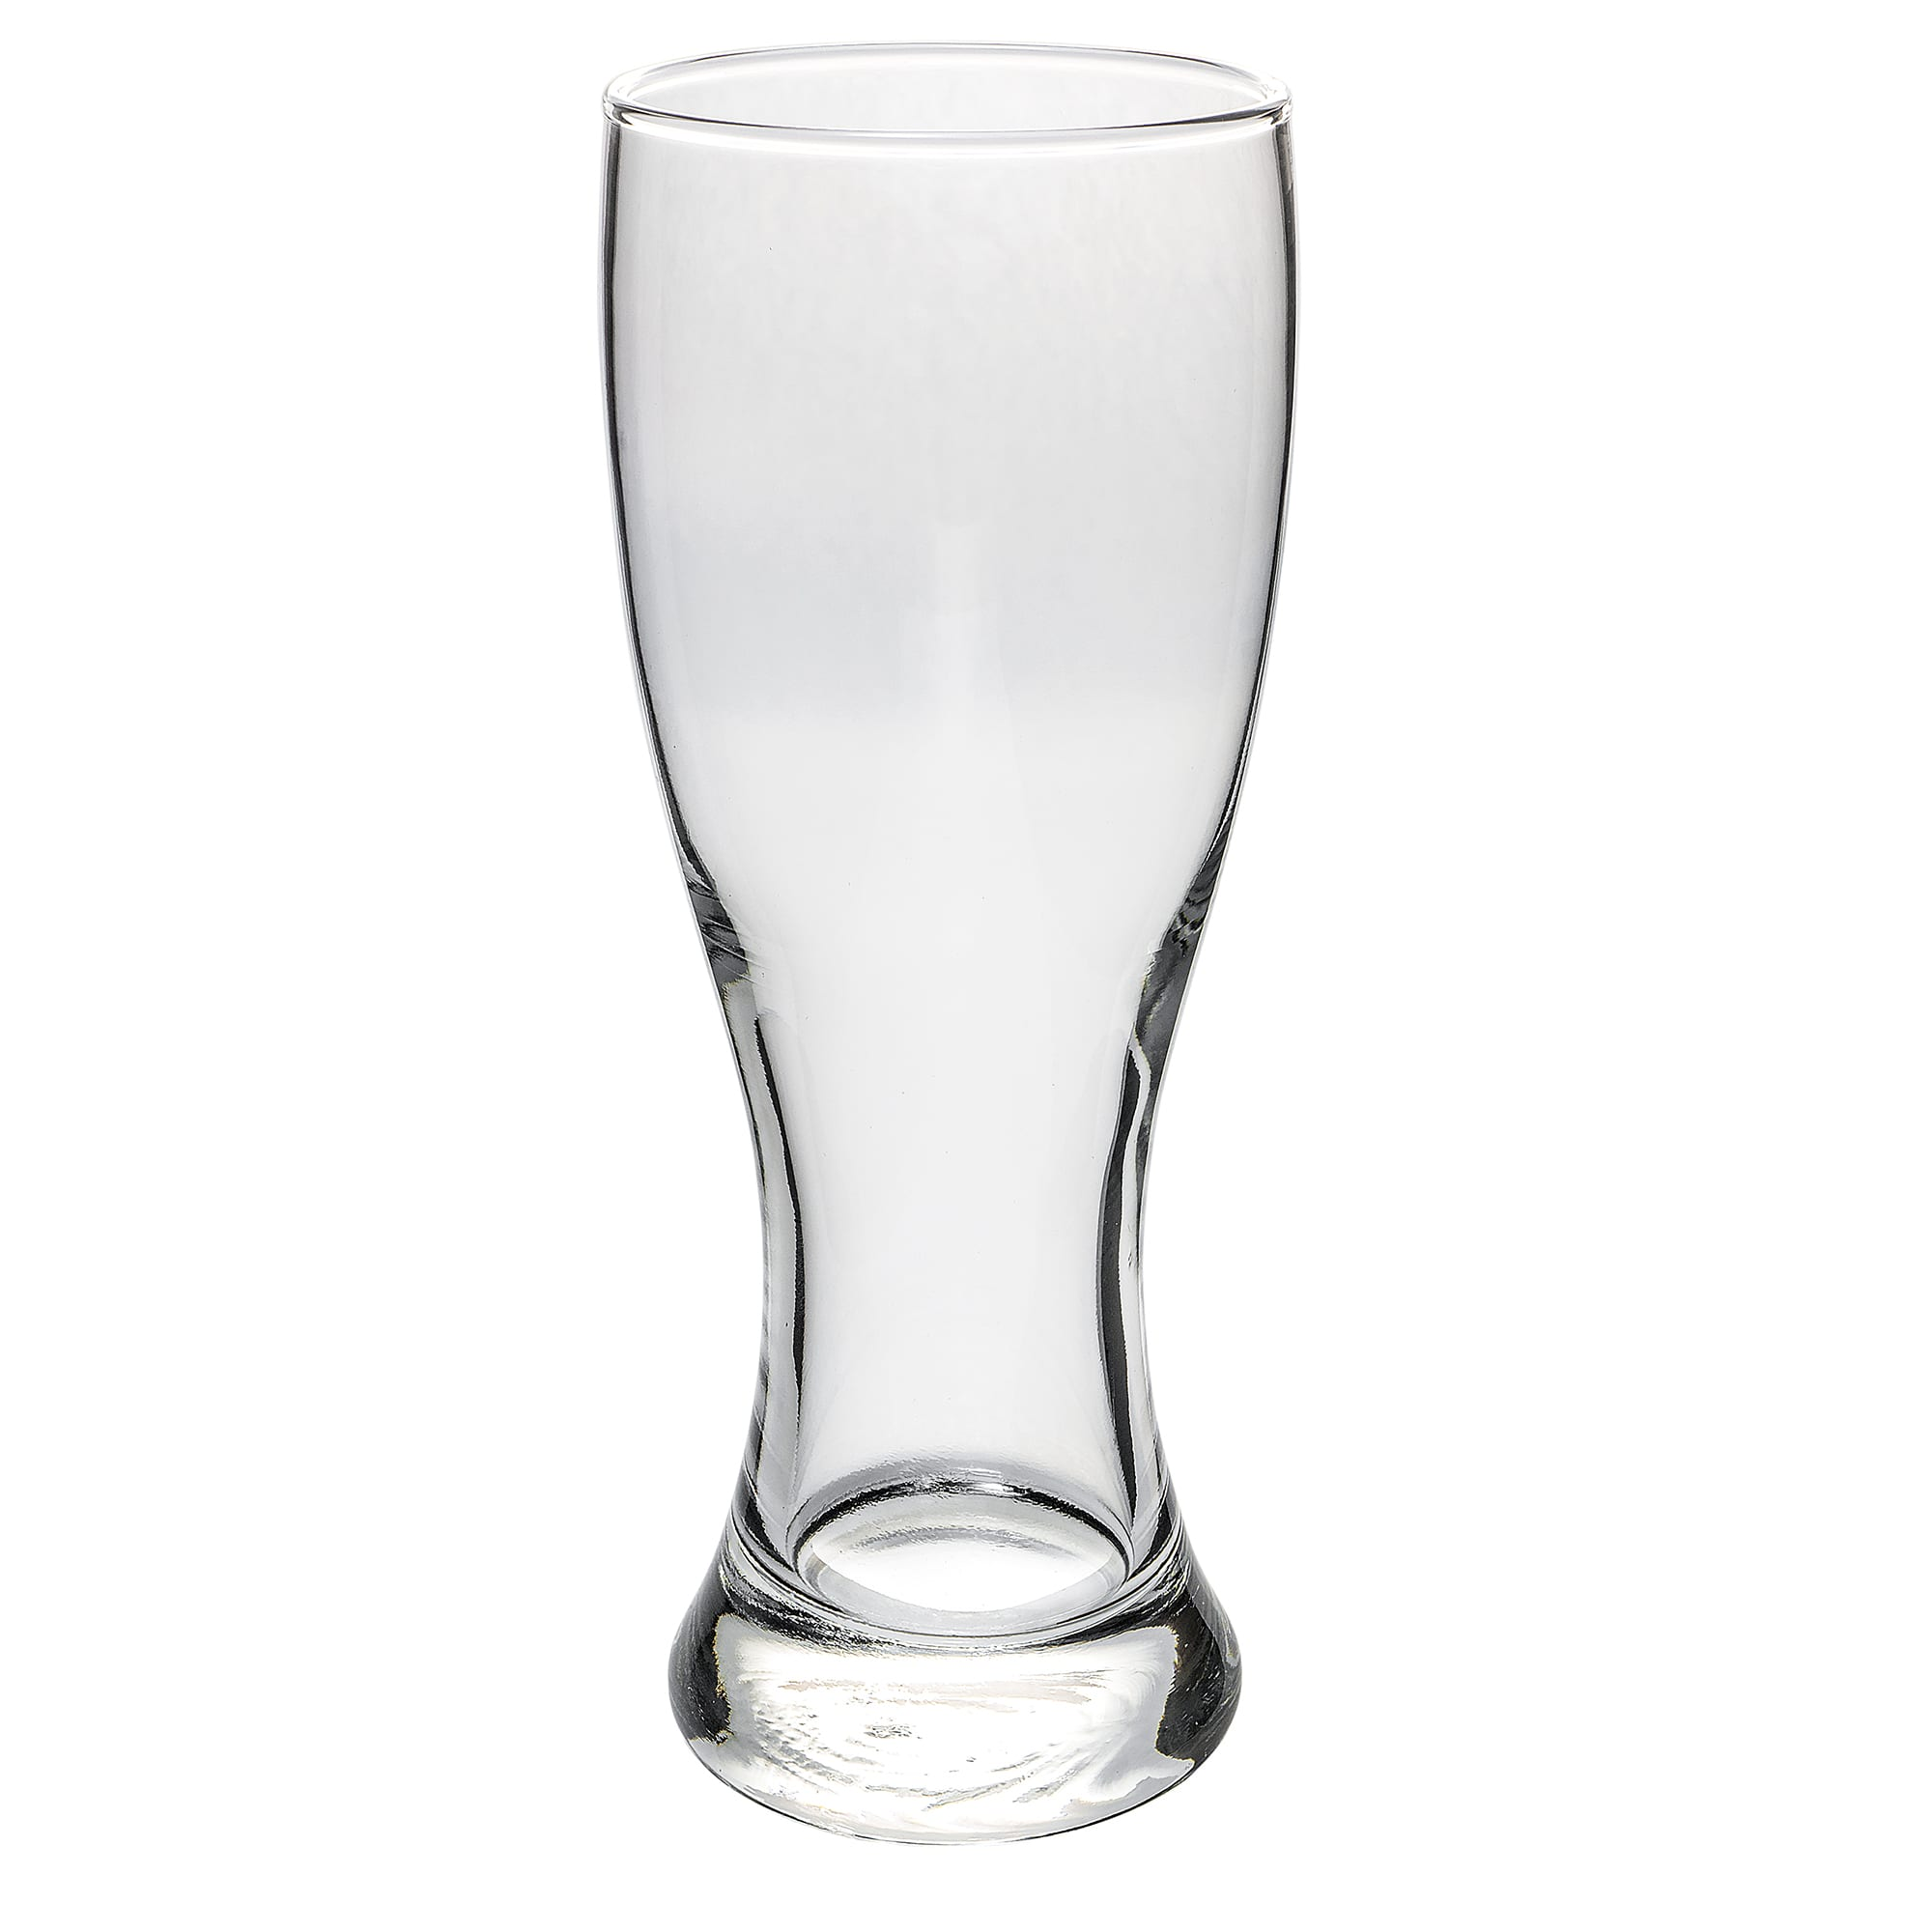 Libbey 1629 20 oz Giant Beer Glass